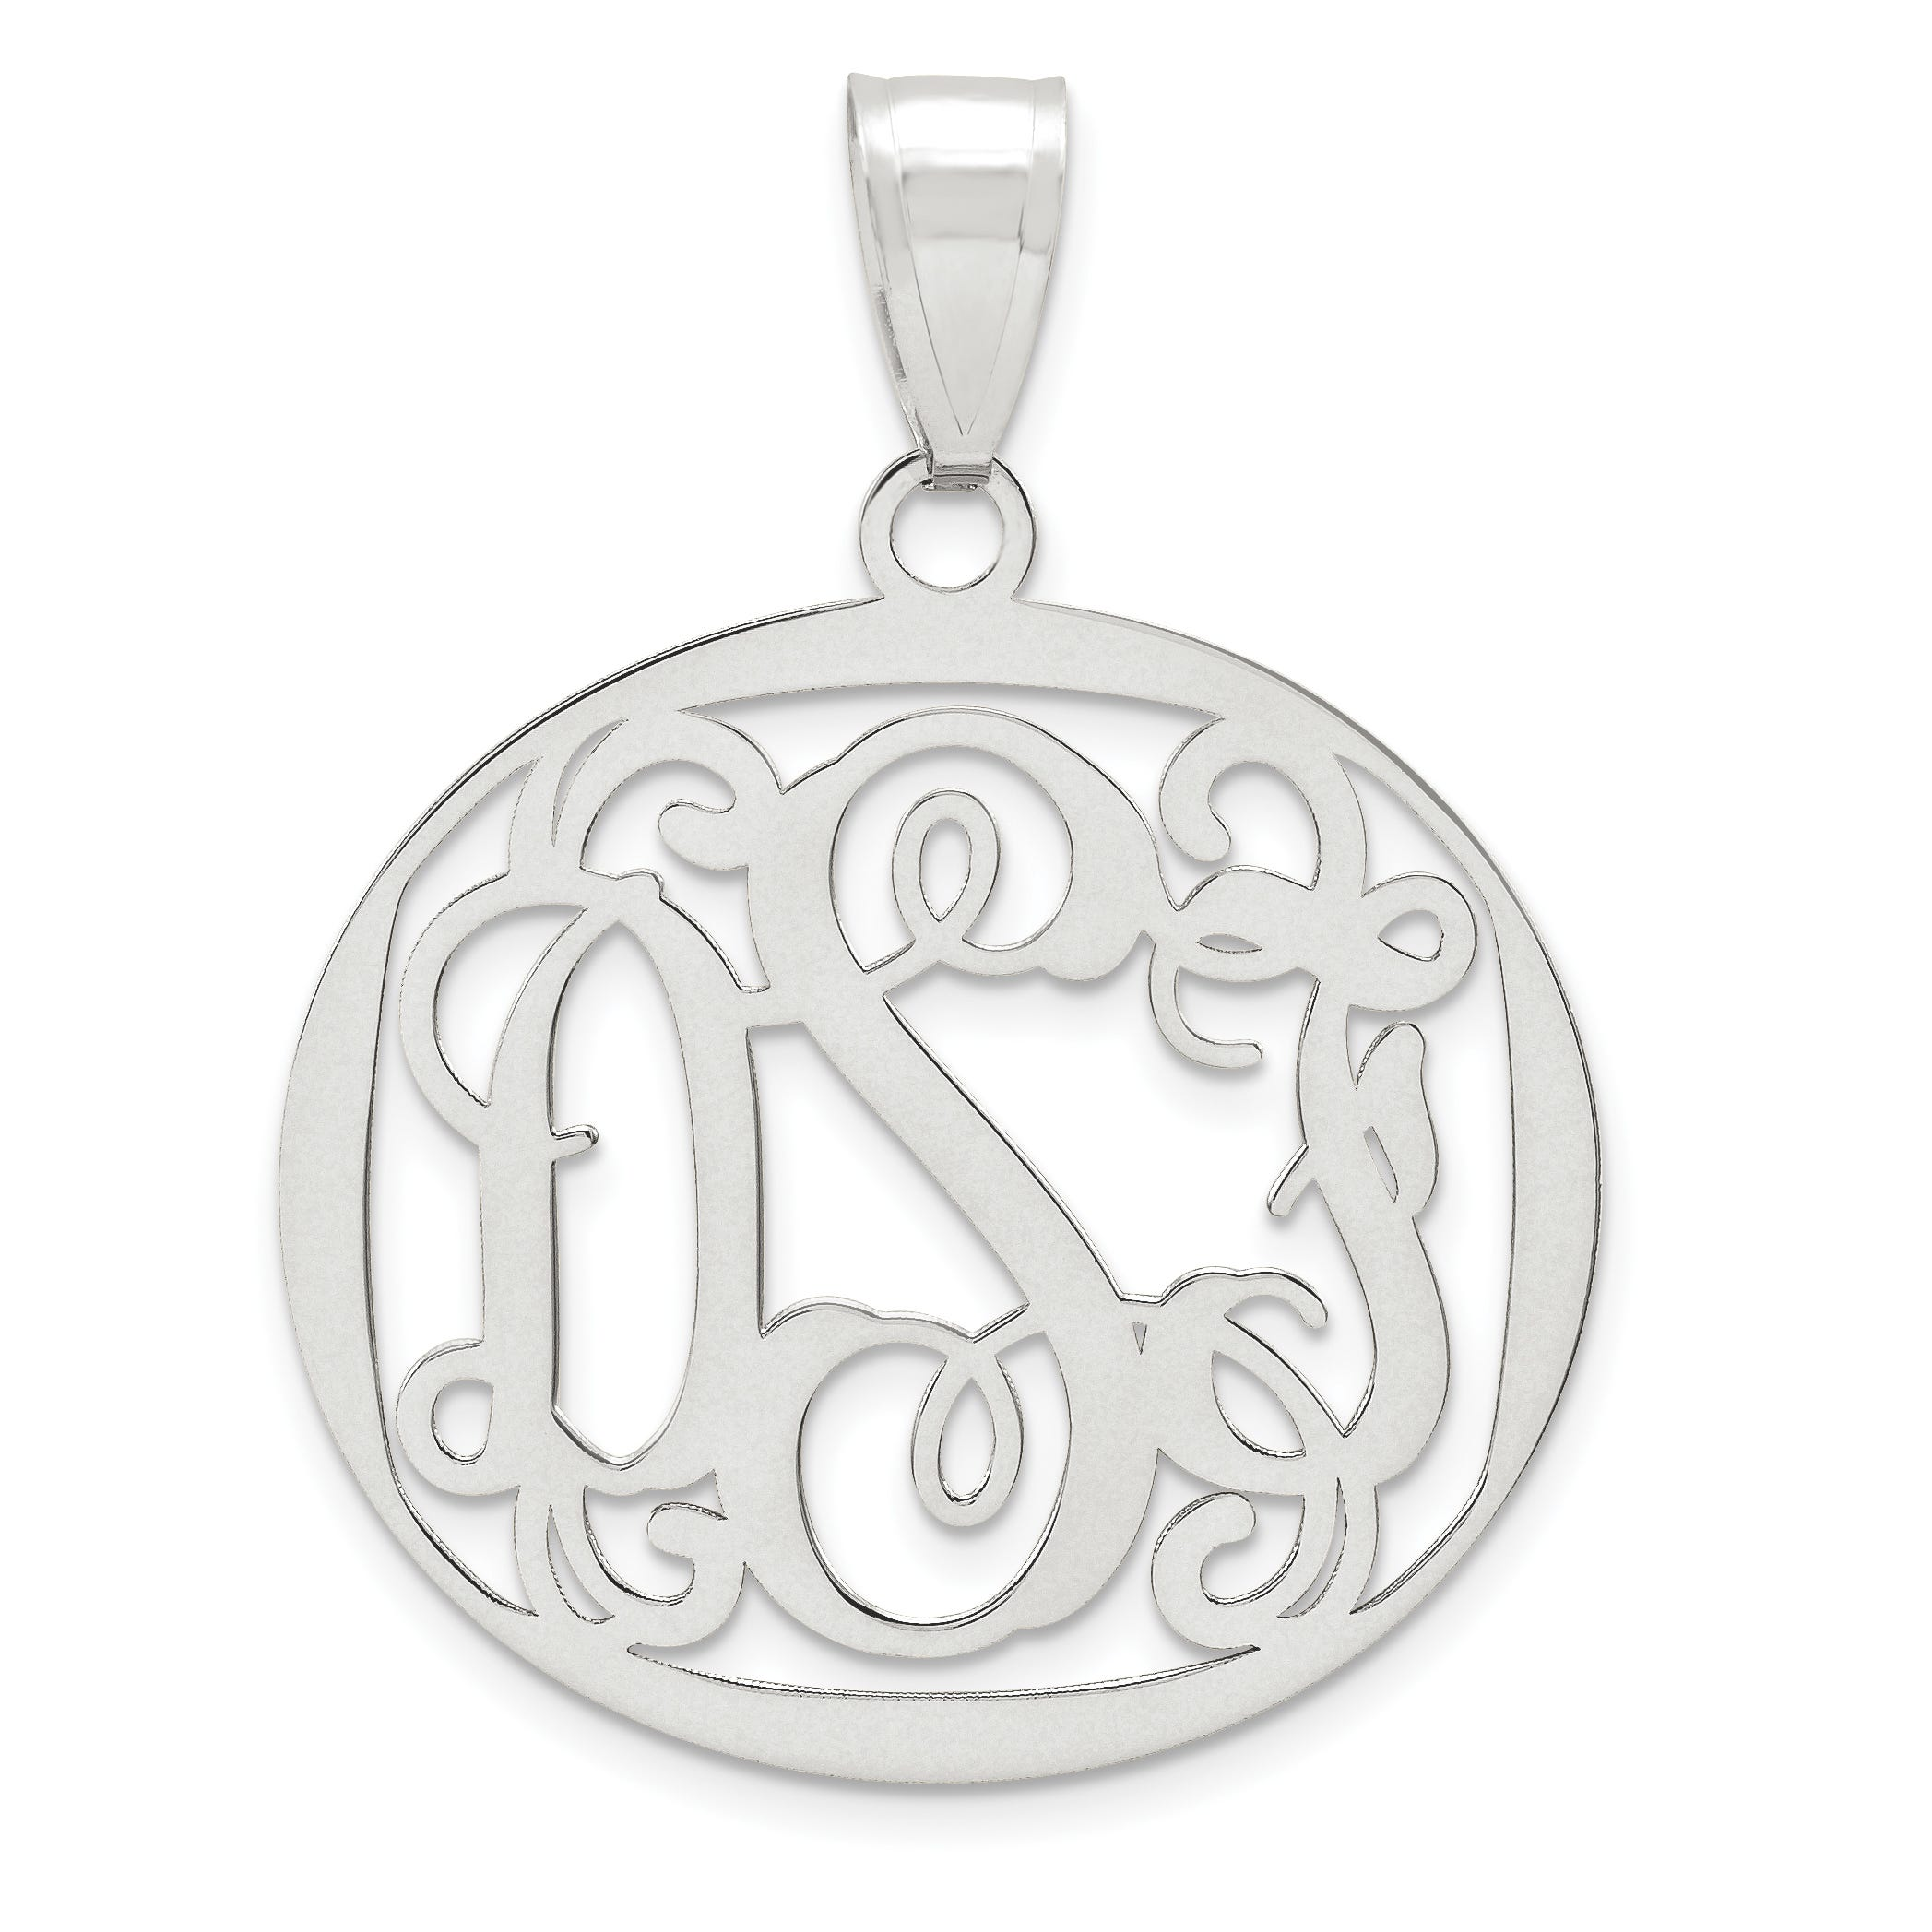 Round 25x28 Monogram Pendant in Sterling Silver (up to 3 letters)